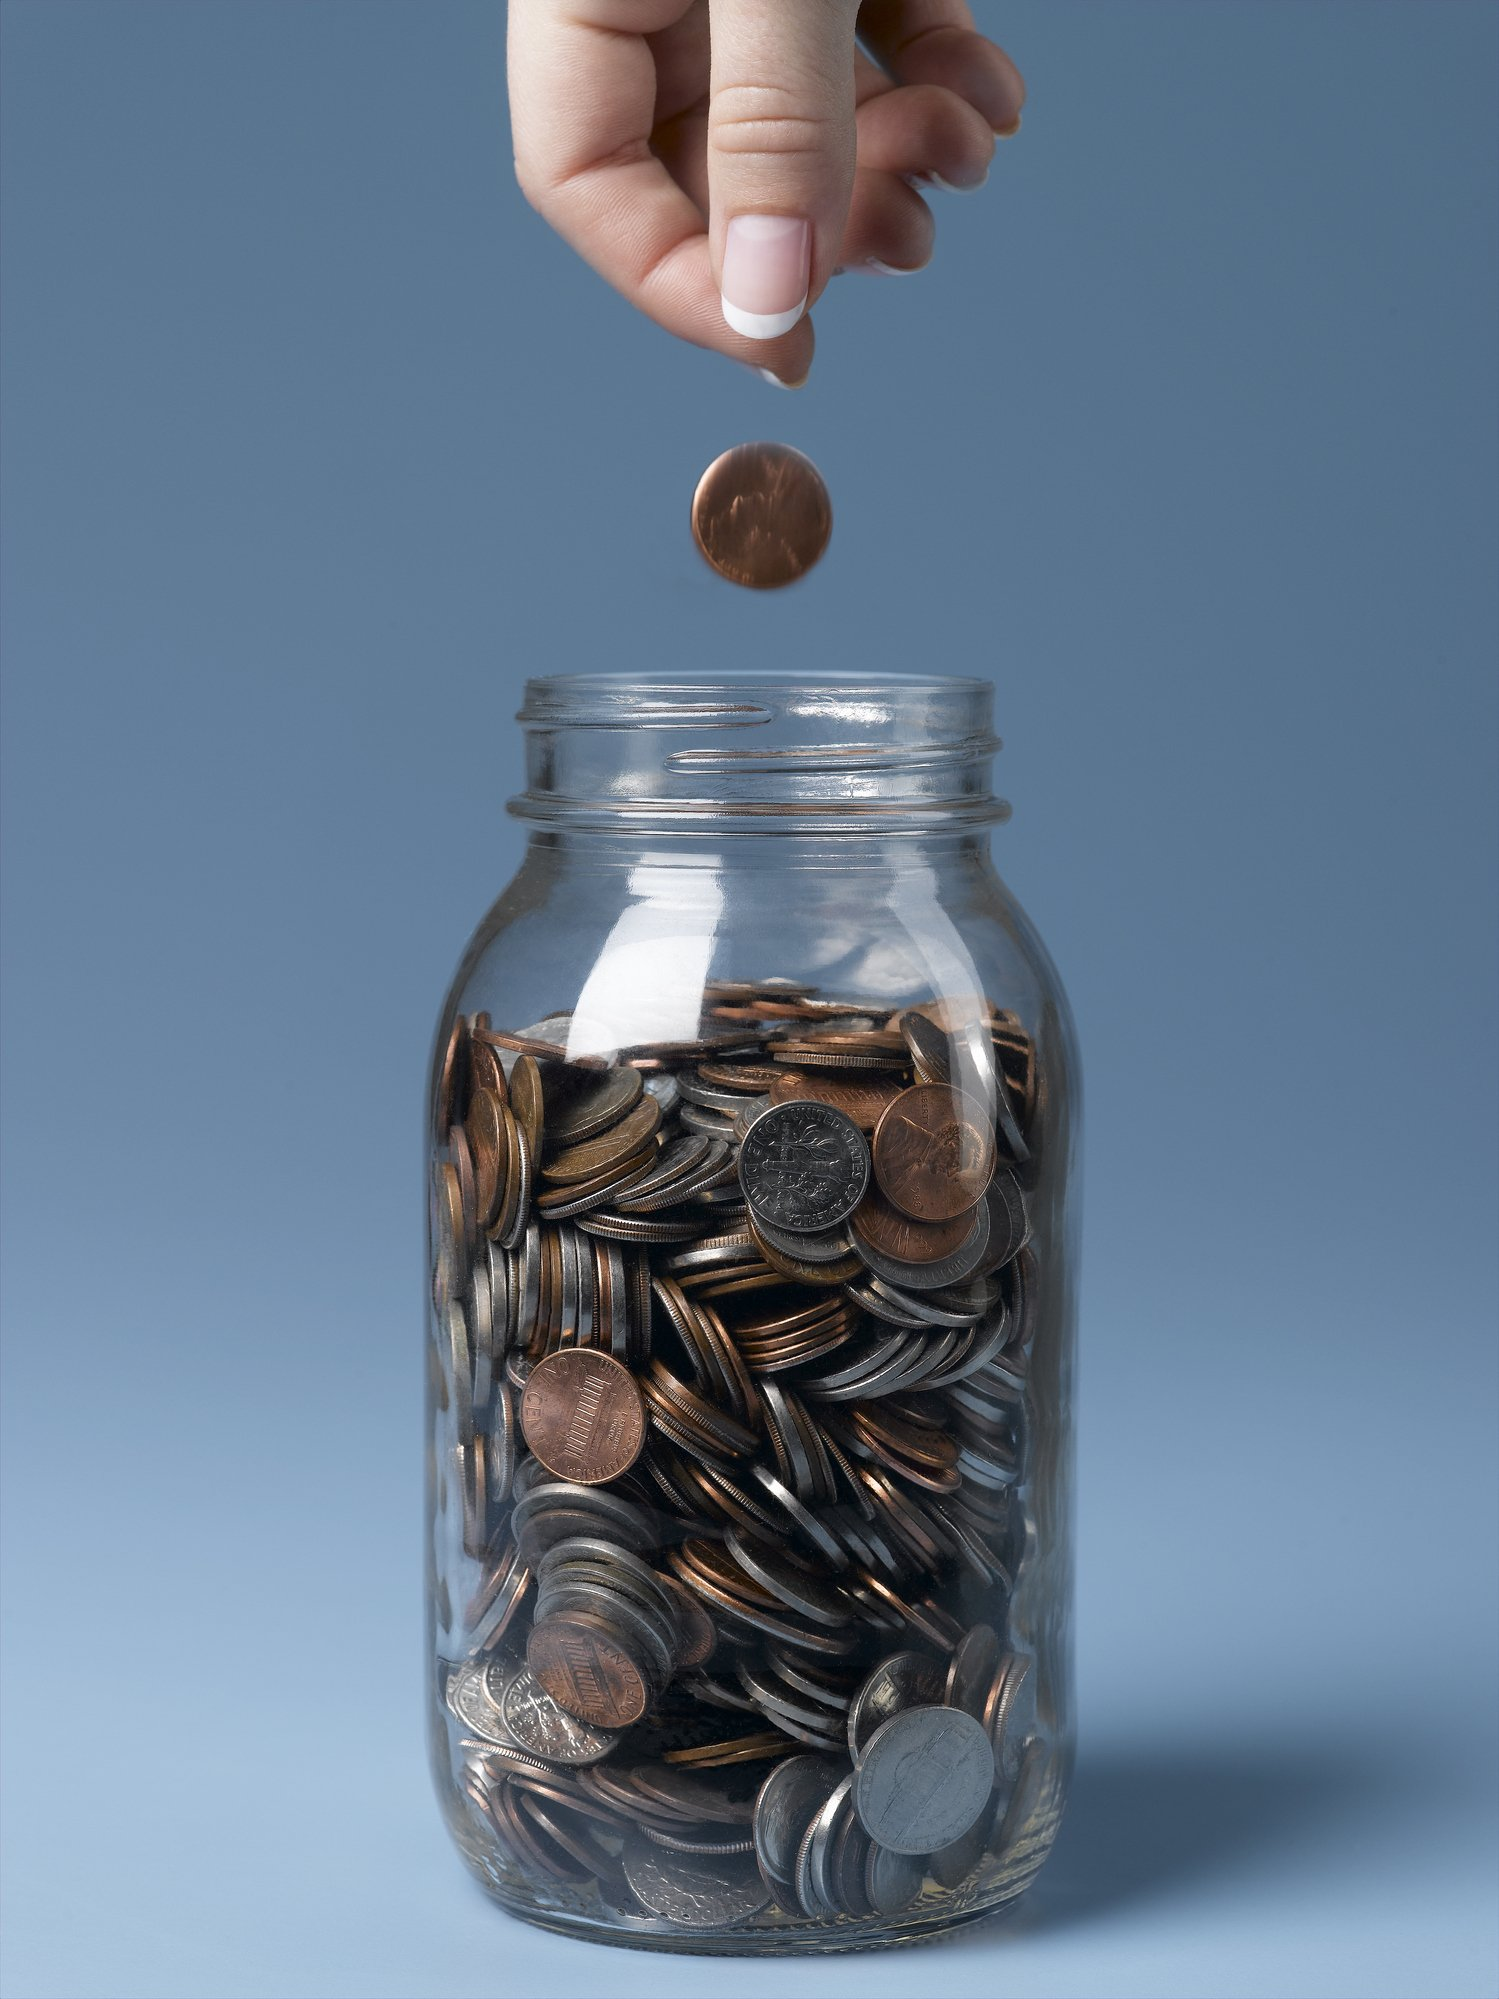 Woman dropping coin into jar close-up | Photo: Getty Images